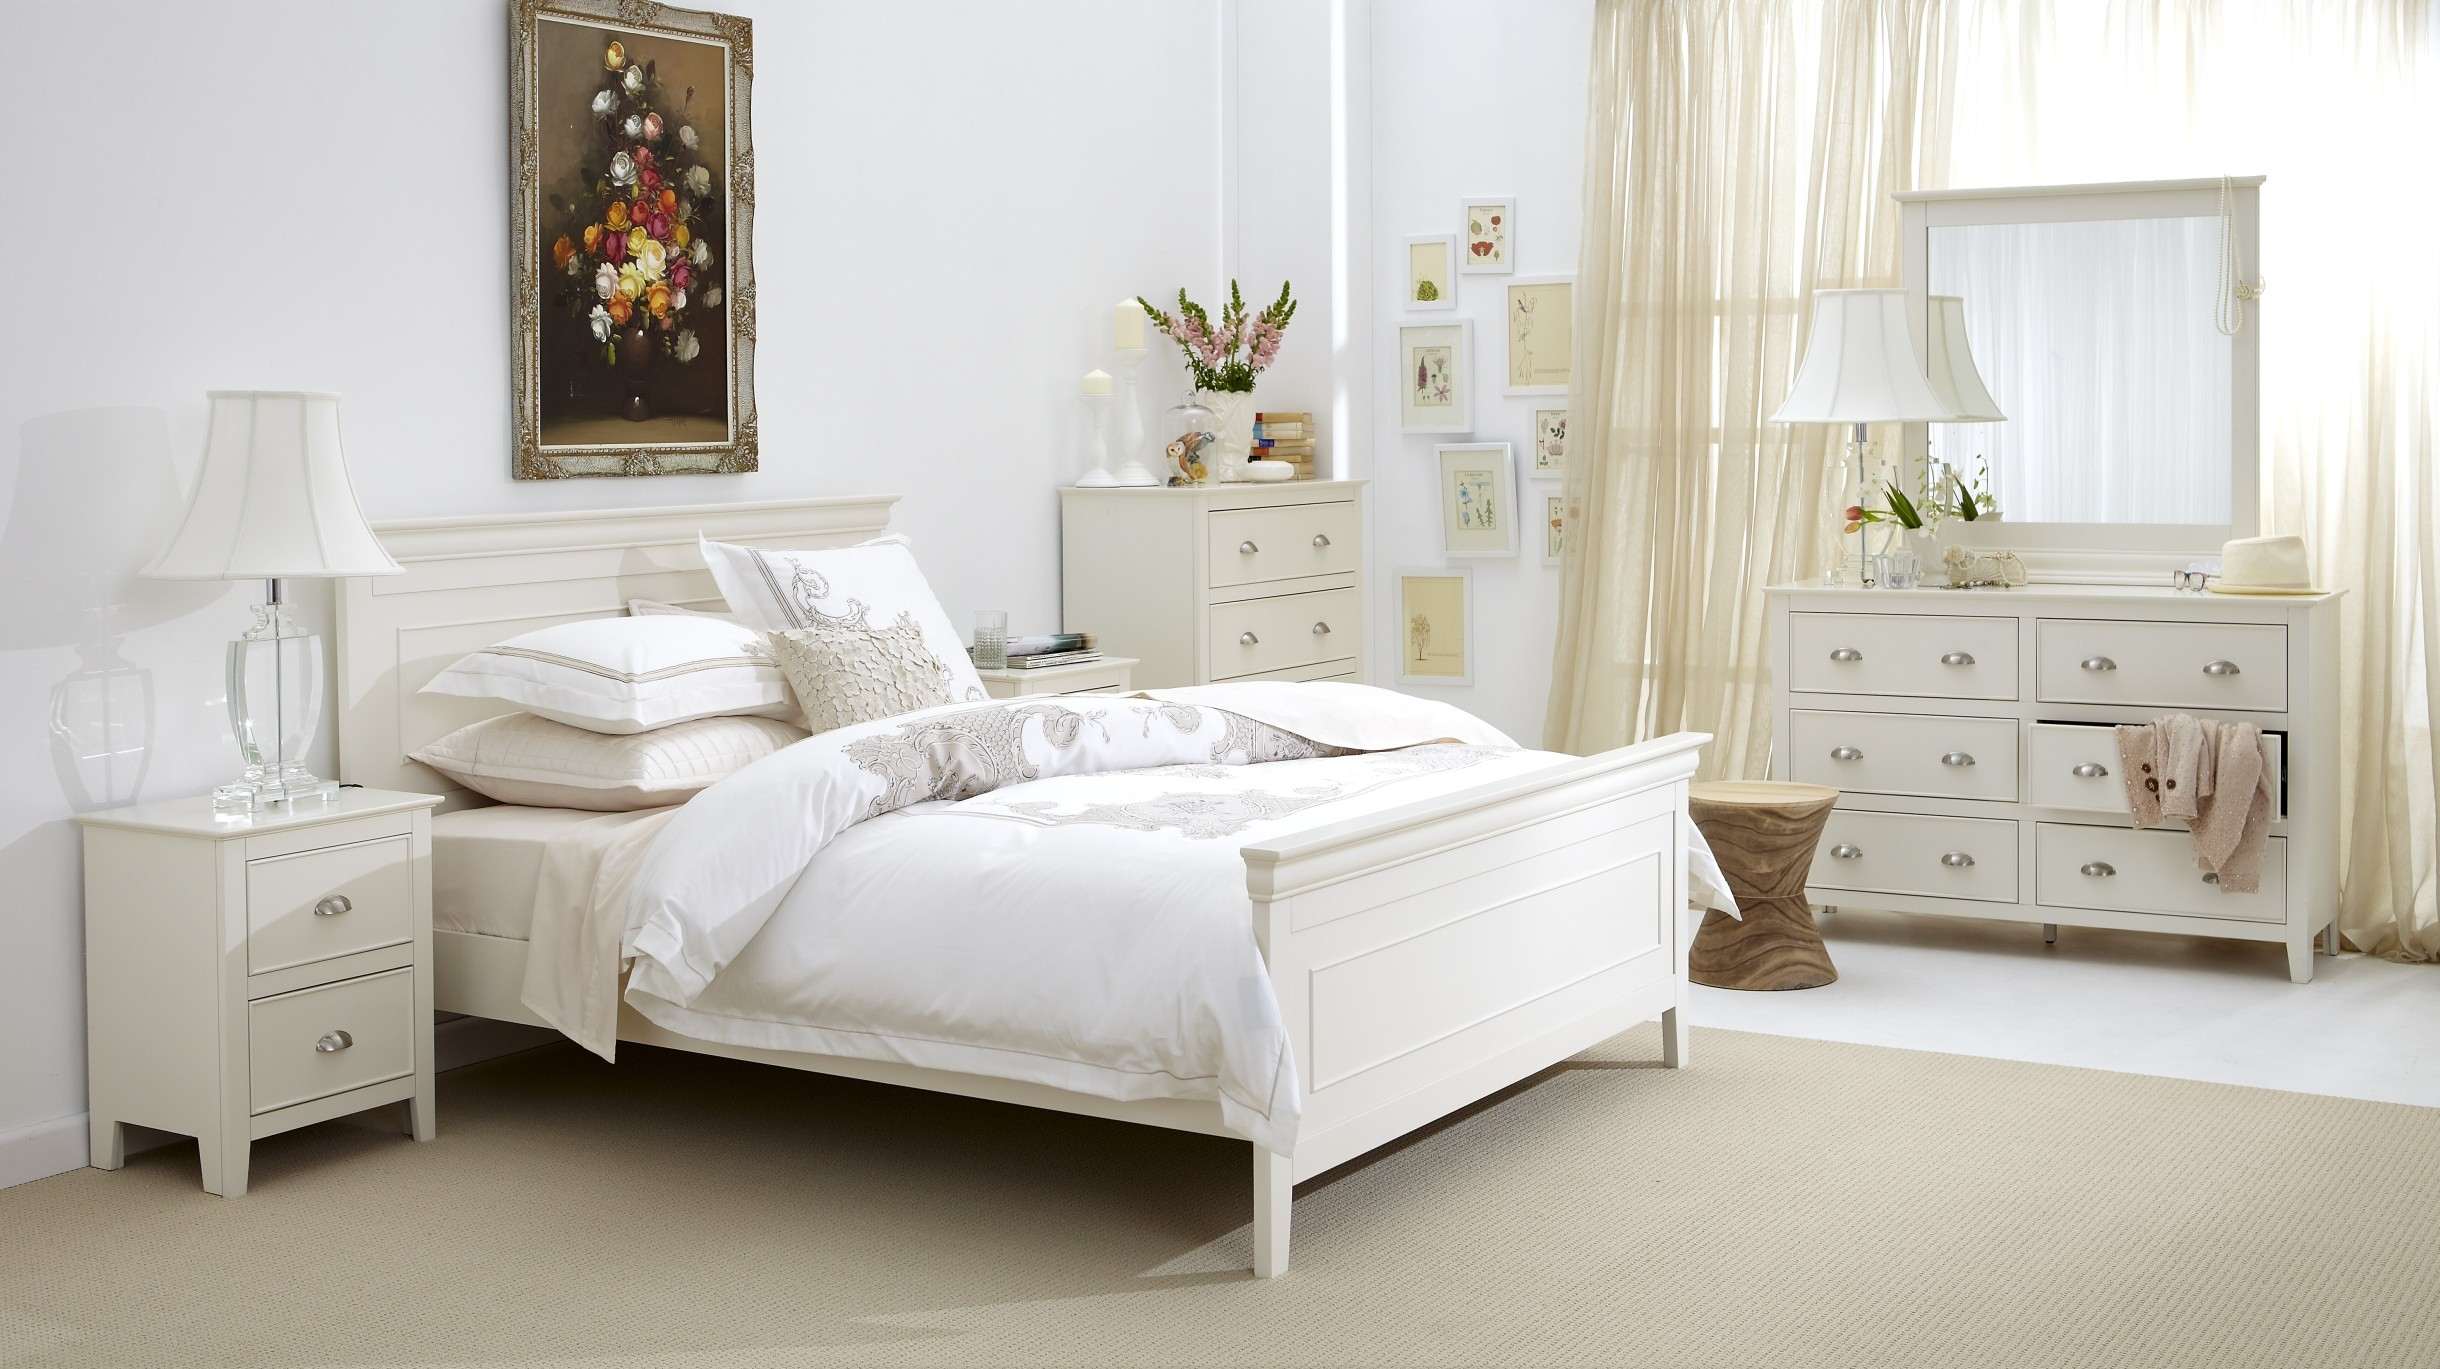 room designs with white furniture photo - 5